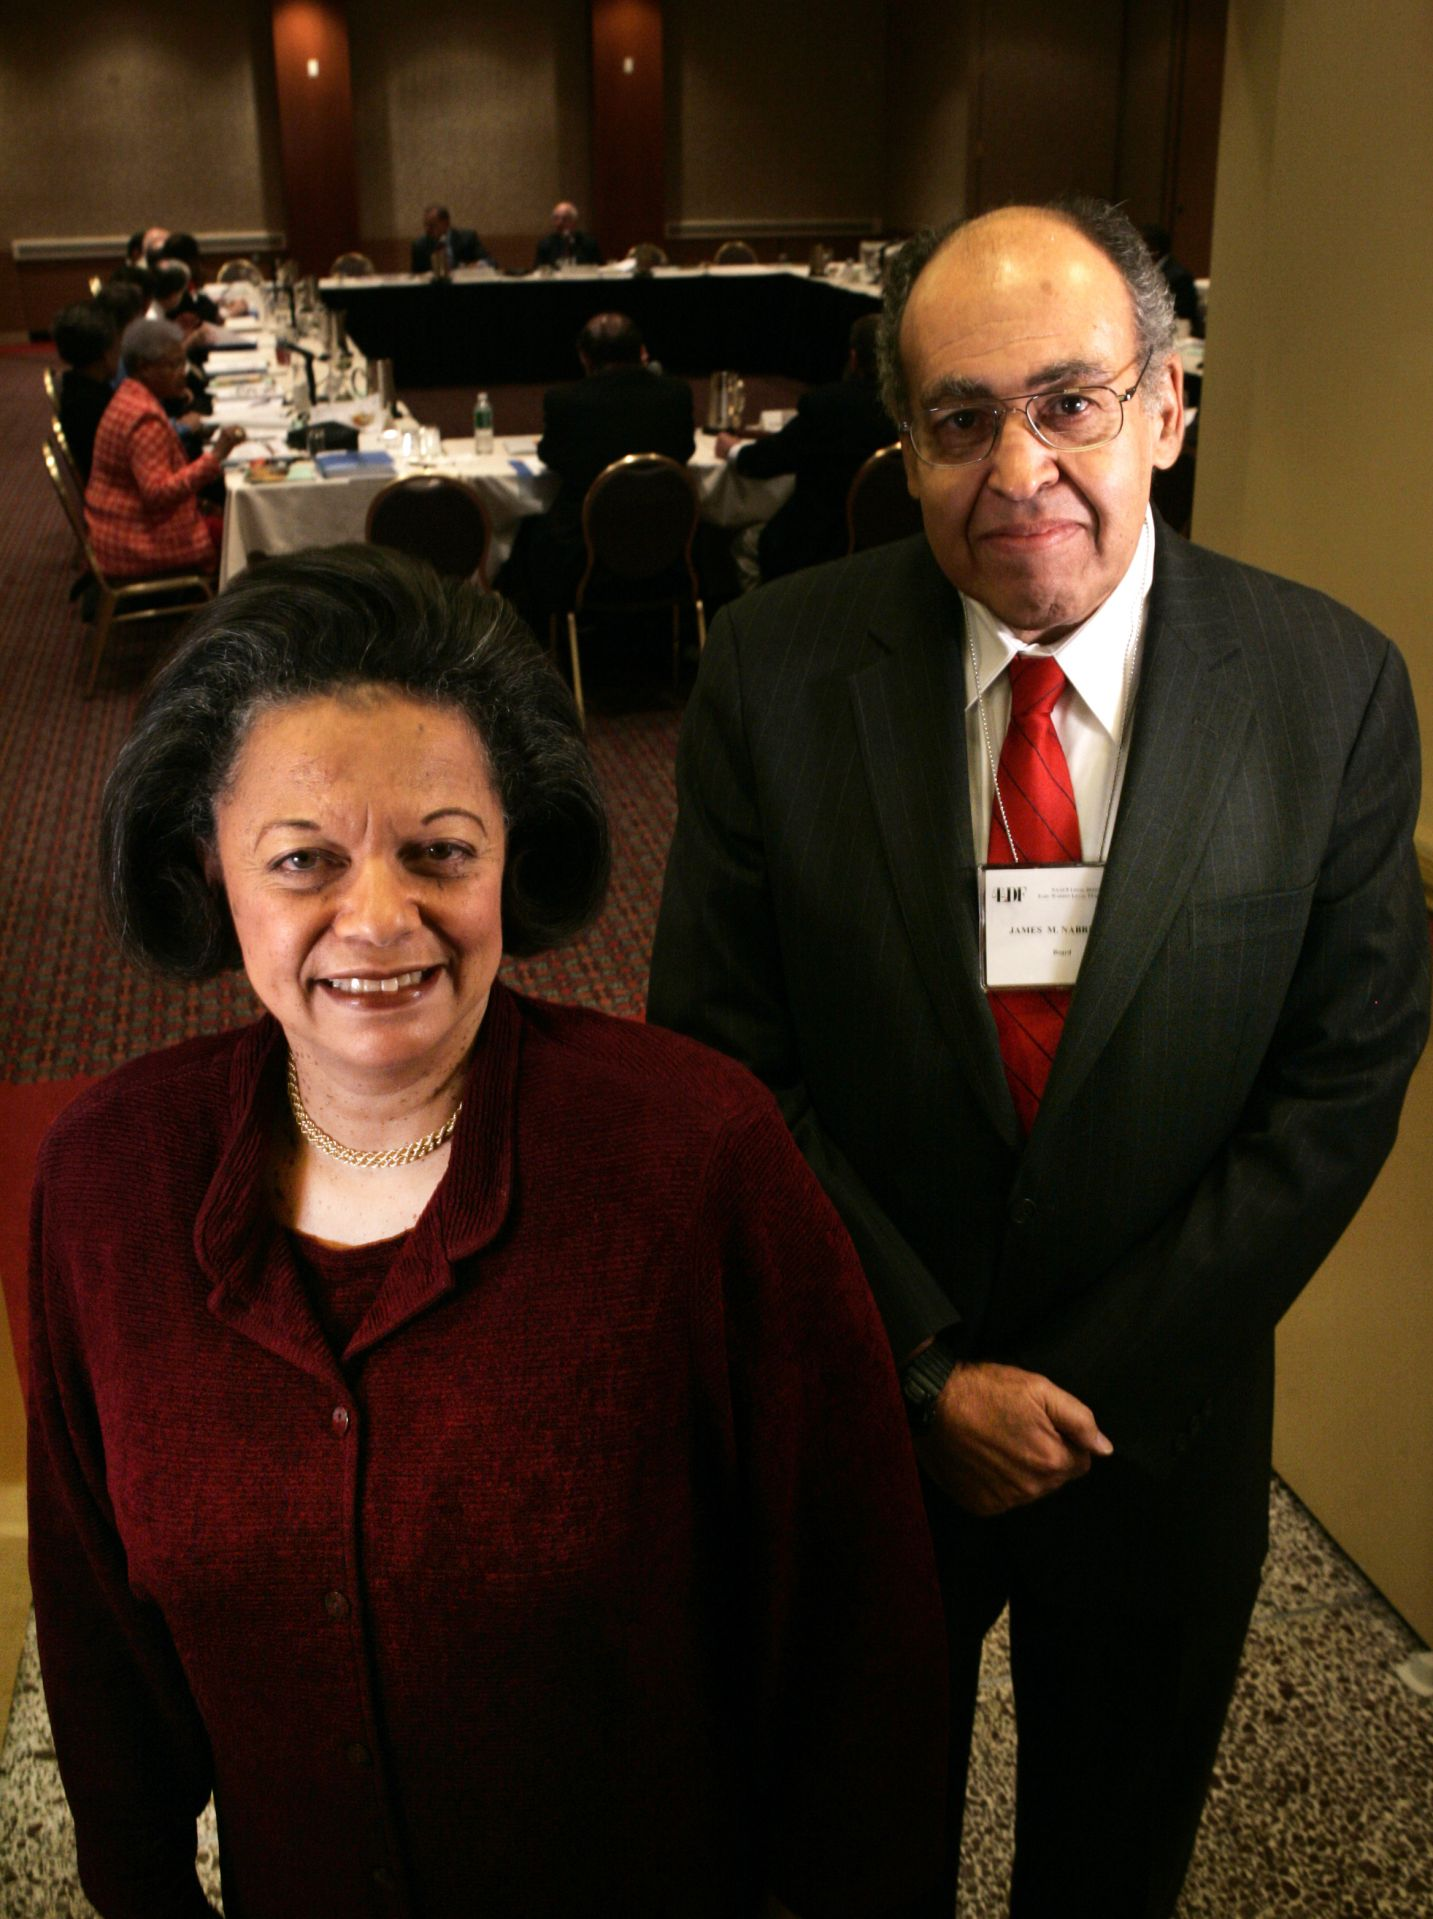 New York City, 9:47 a.m. , Nov. 3, 2005  DUAL OF LAW At a Manhattan hotel, NAACP Legal Defense Fund board secretary James M. Nabrit III '52 and fellow board member Karen Hastie Williams '66 take a quick break from the group's annual meeting. Nabrit is a former LDF litigator who argued numerous important civil rights cases before the U.S. Supreme Court; Williams is a retired partner in the Washington law firm of Crowell & Moring LLP.  Photo by Michael Appleton for Bates College  From the Winter 2006 issue of Bates Magazine photo essay capturing Bates people around the world photographed at the same moment on the same day: 9:47 a.m. Eastern Time (or 14:47 Greenwich Mean Time, if you wish) on Nov. 3, 2005.